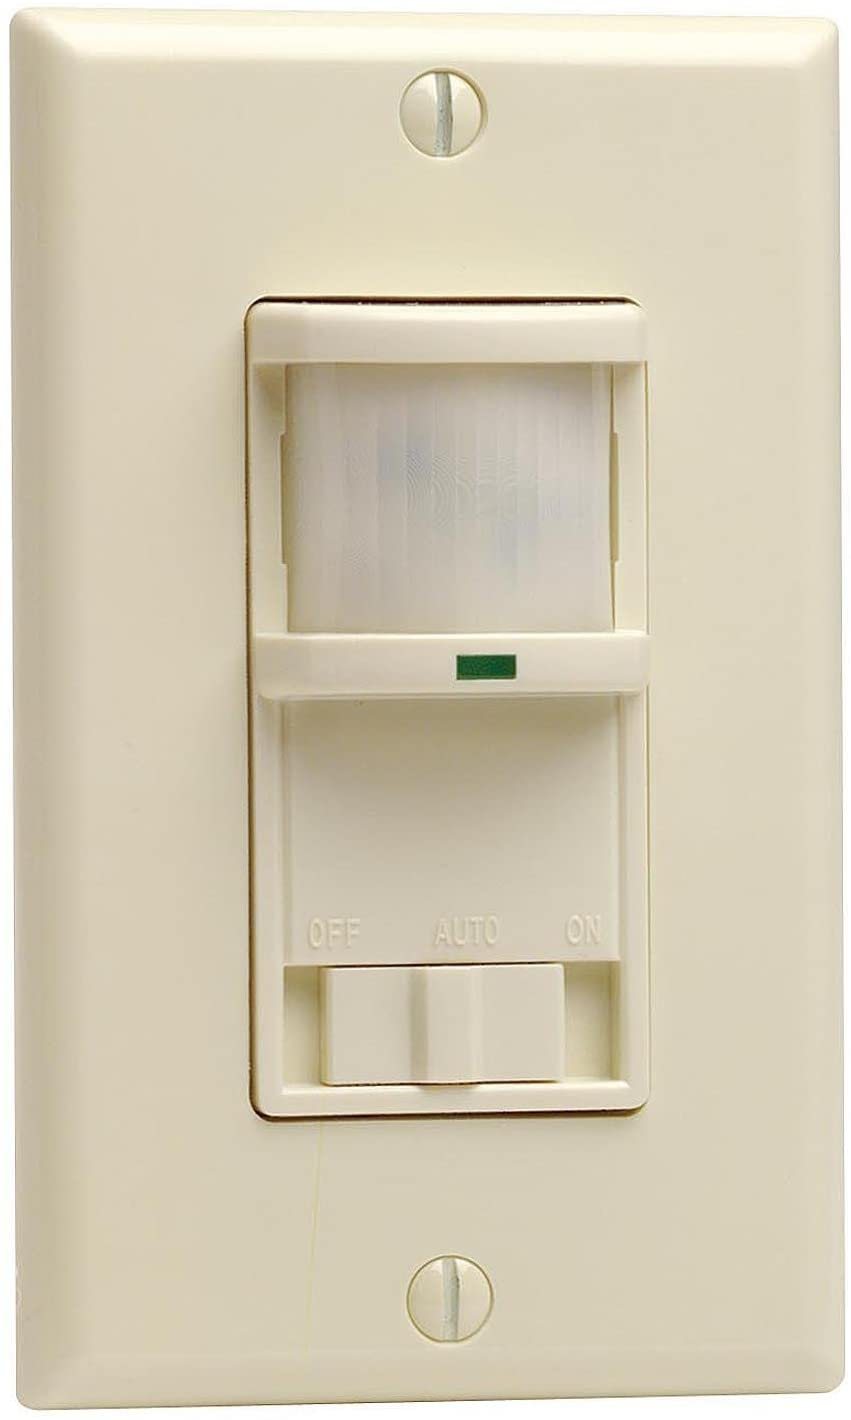 Leviton PR180-1LA Decora 500W Incandescent, 400VA, Passive Infrared Wall Switch Occupancy Sensor, Single Pole and 3-Way, Almond